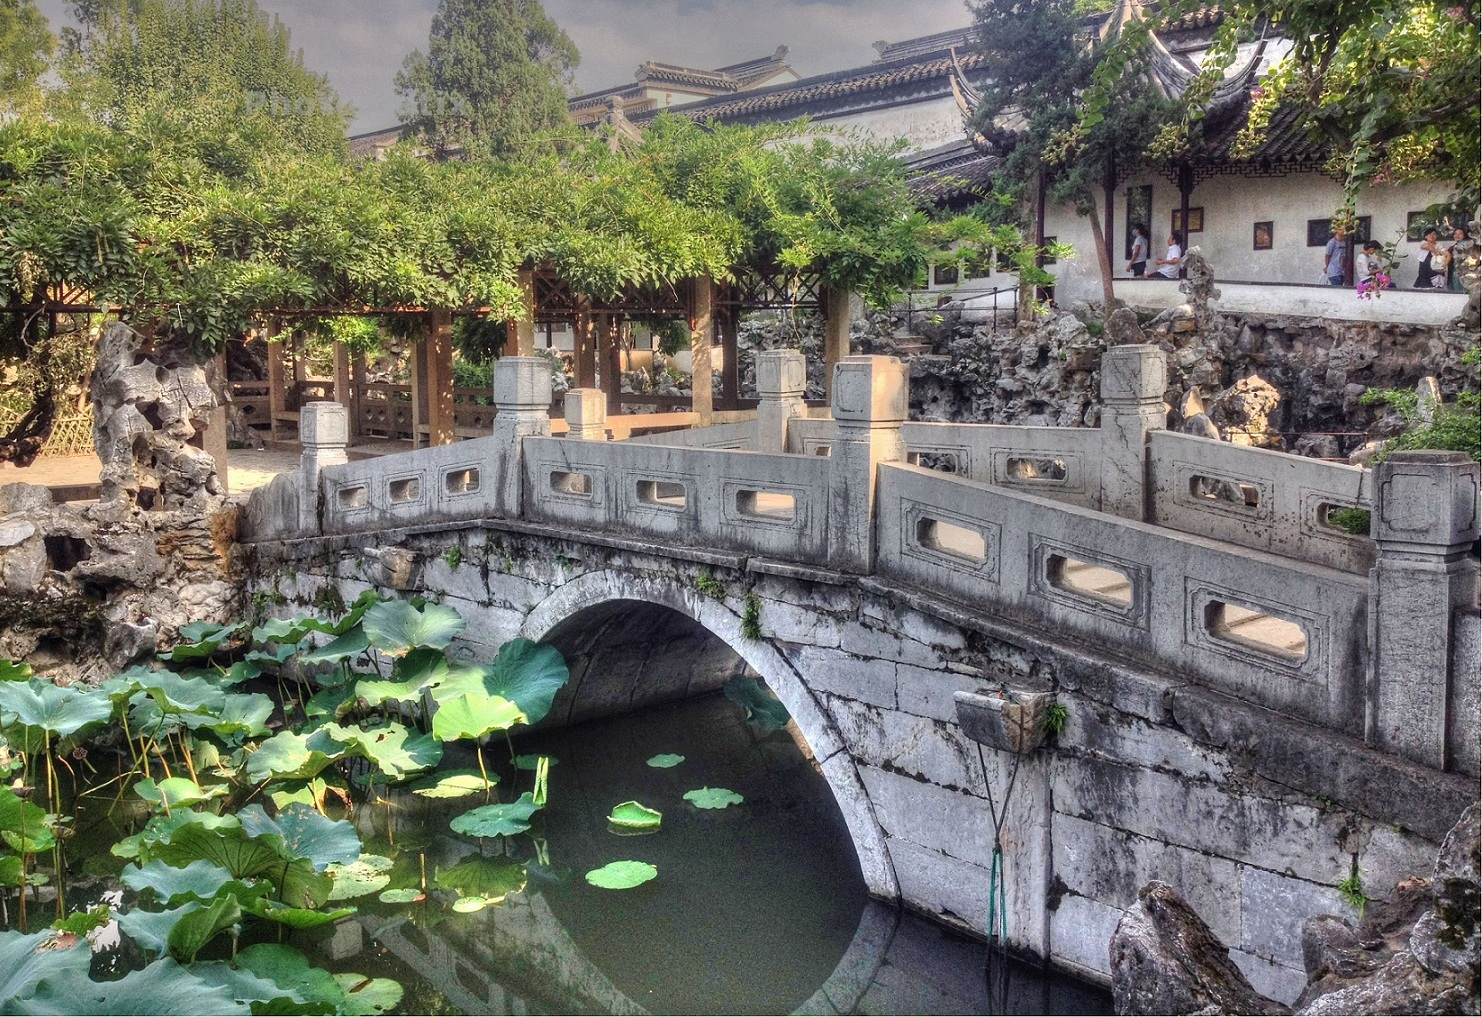 One-day Suzhou Private tour to Lion Grove Garden, Shantang Canal Street, and Tiger Hill. (depart from Shanghai)